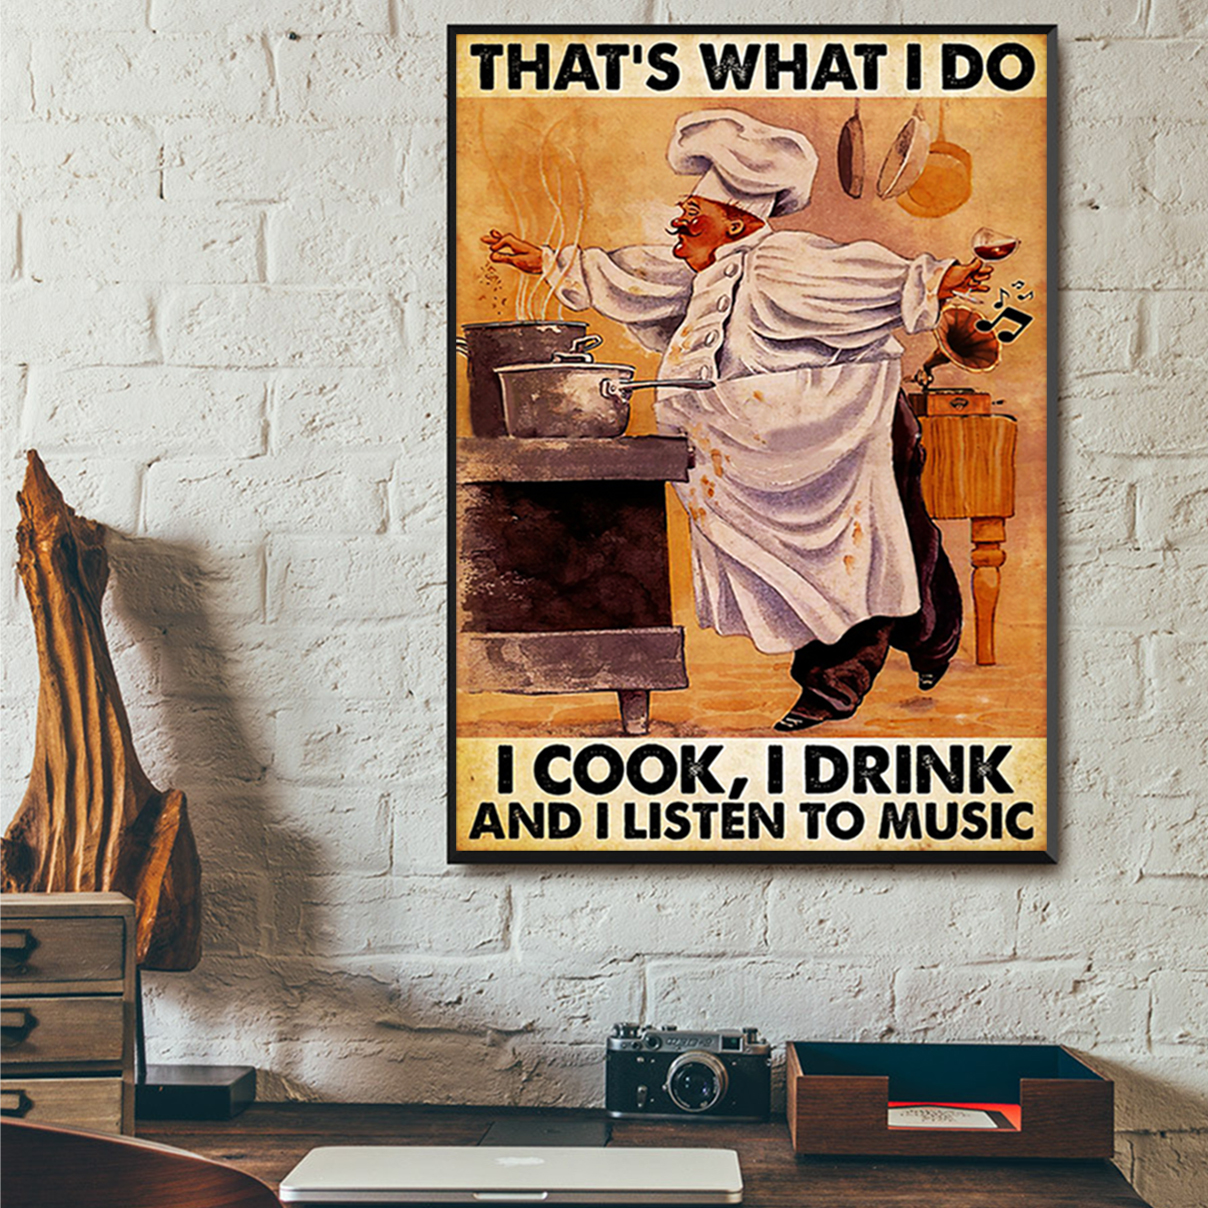 Chef that's what I do I cook I drink and listen to music poster A3